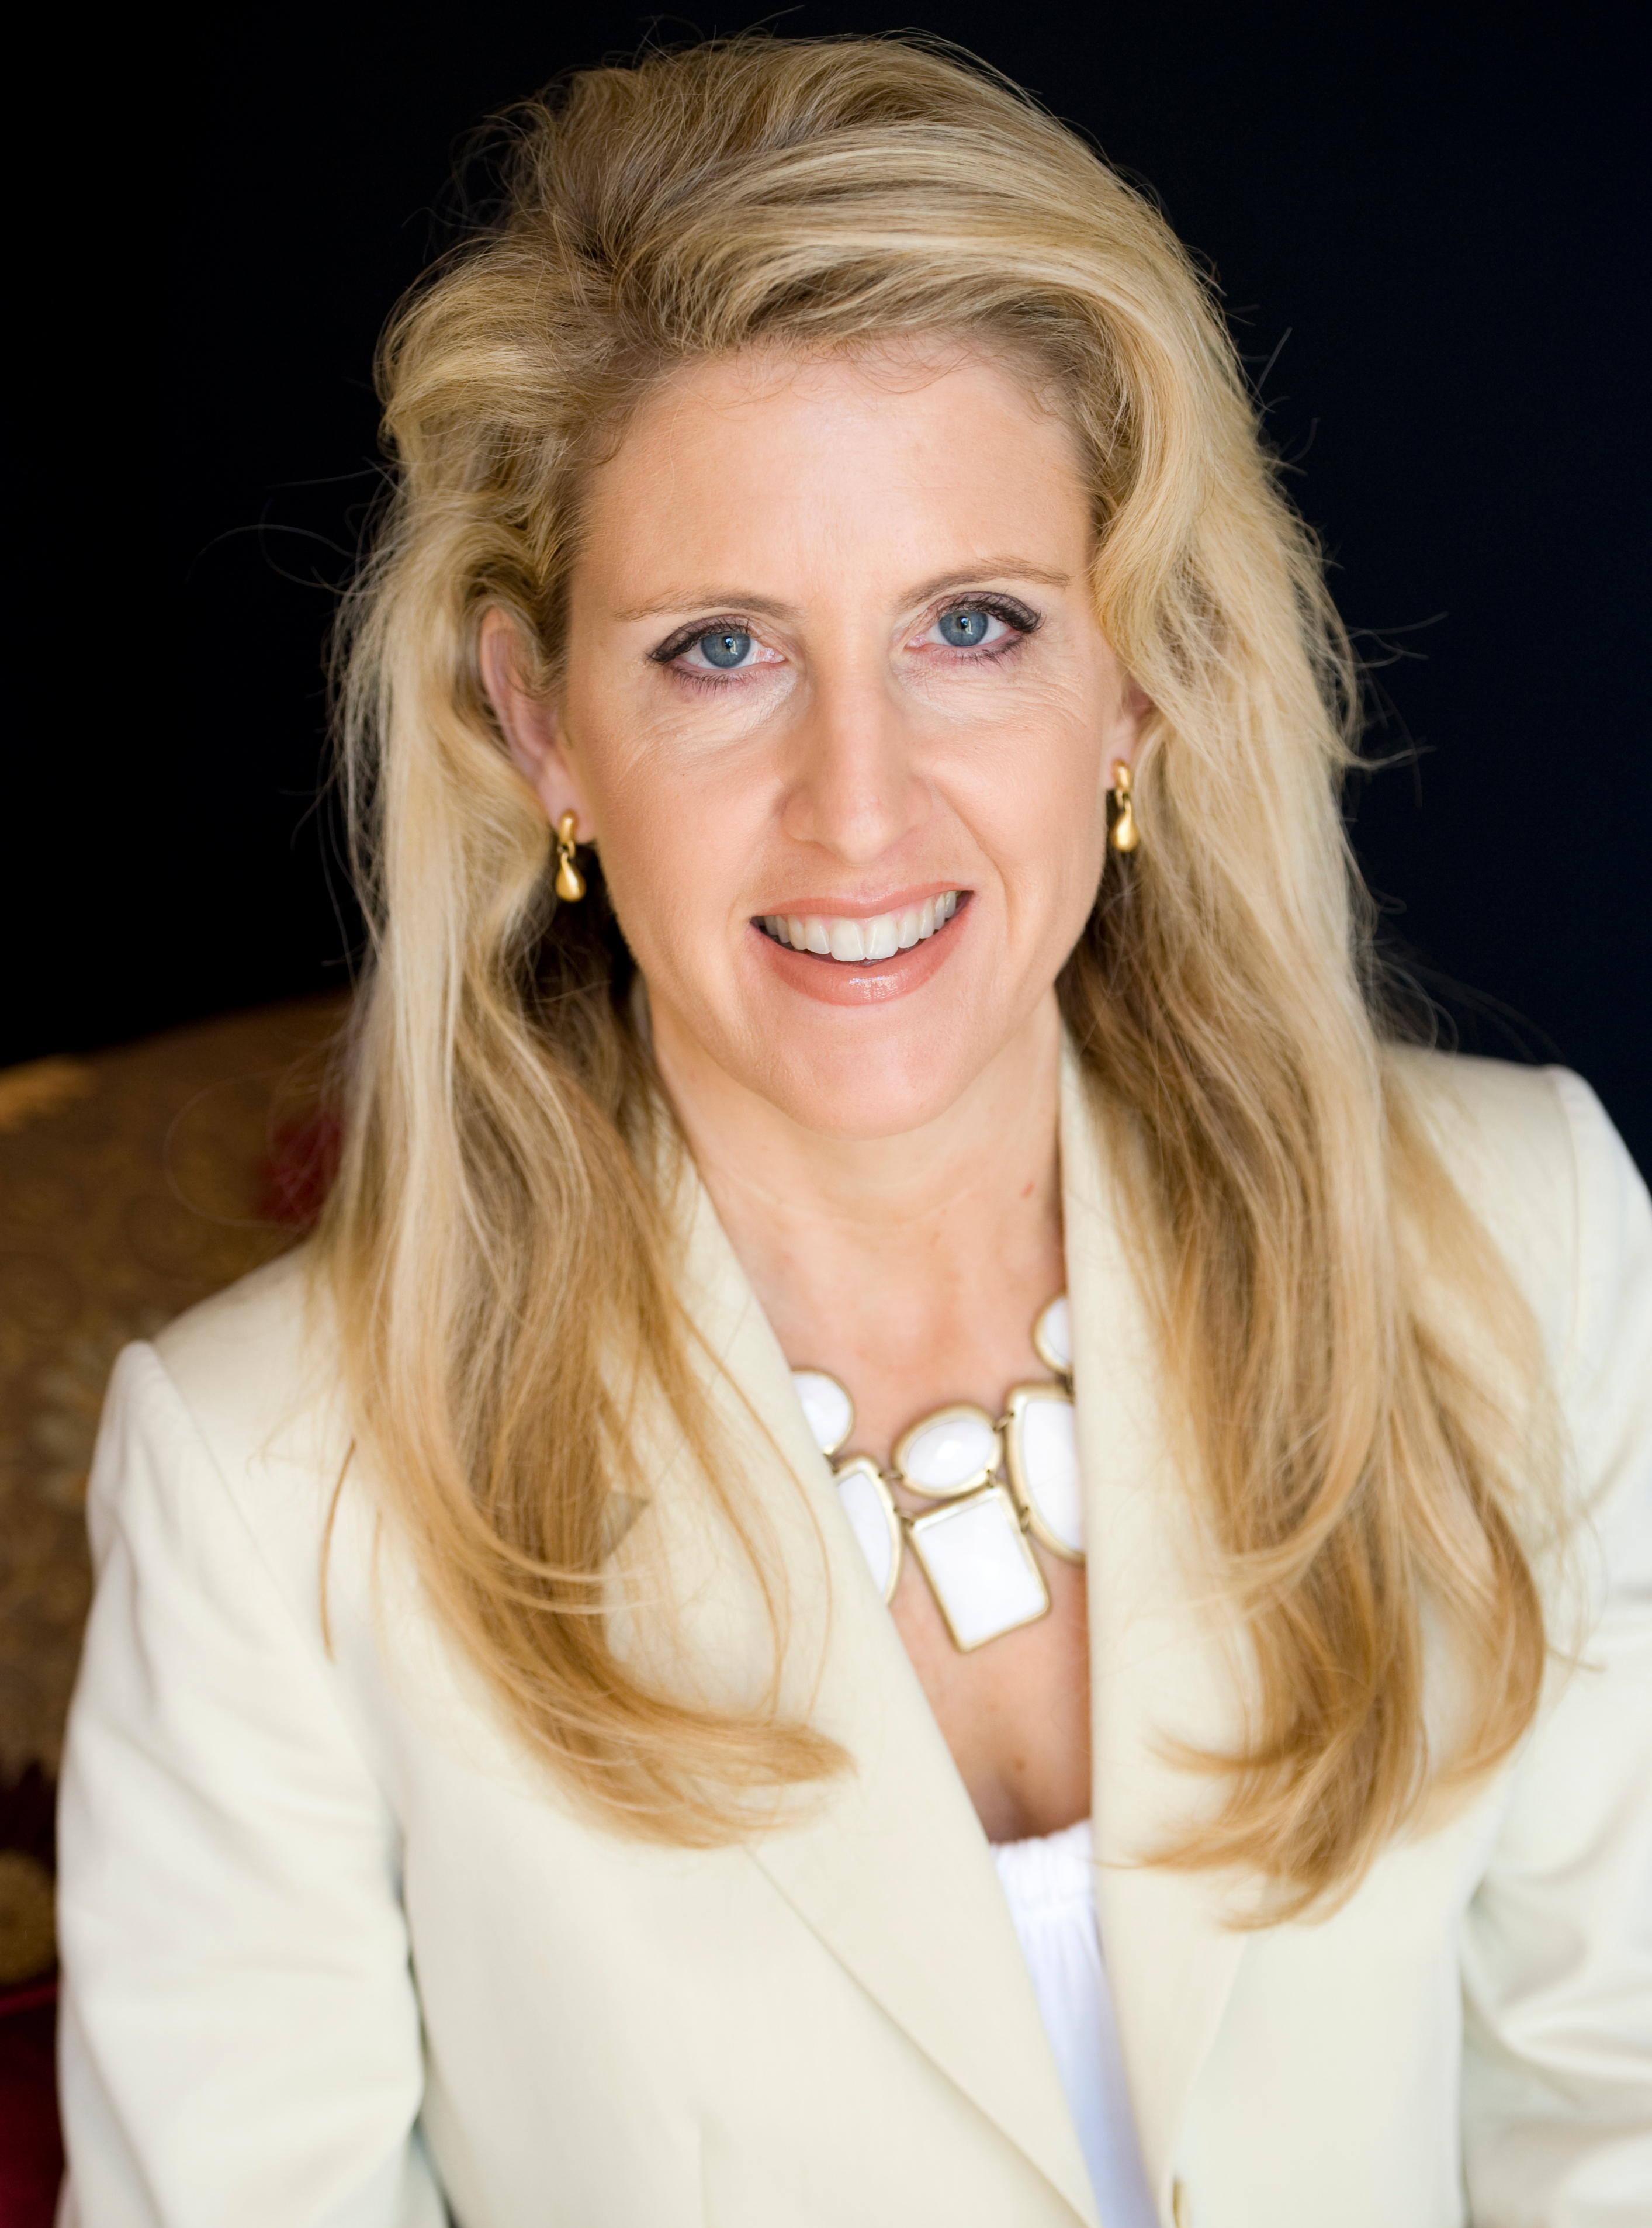 Sue Anderson, Director of Marketing and Client Relations